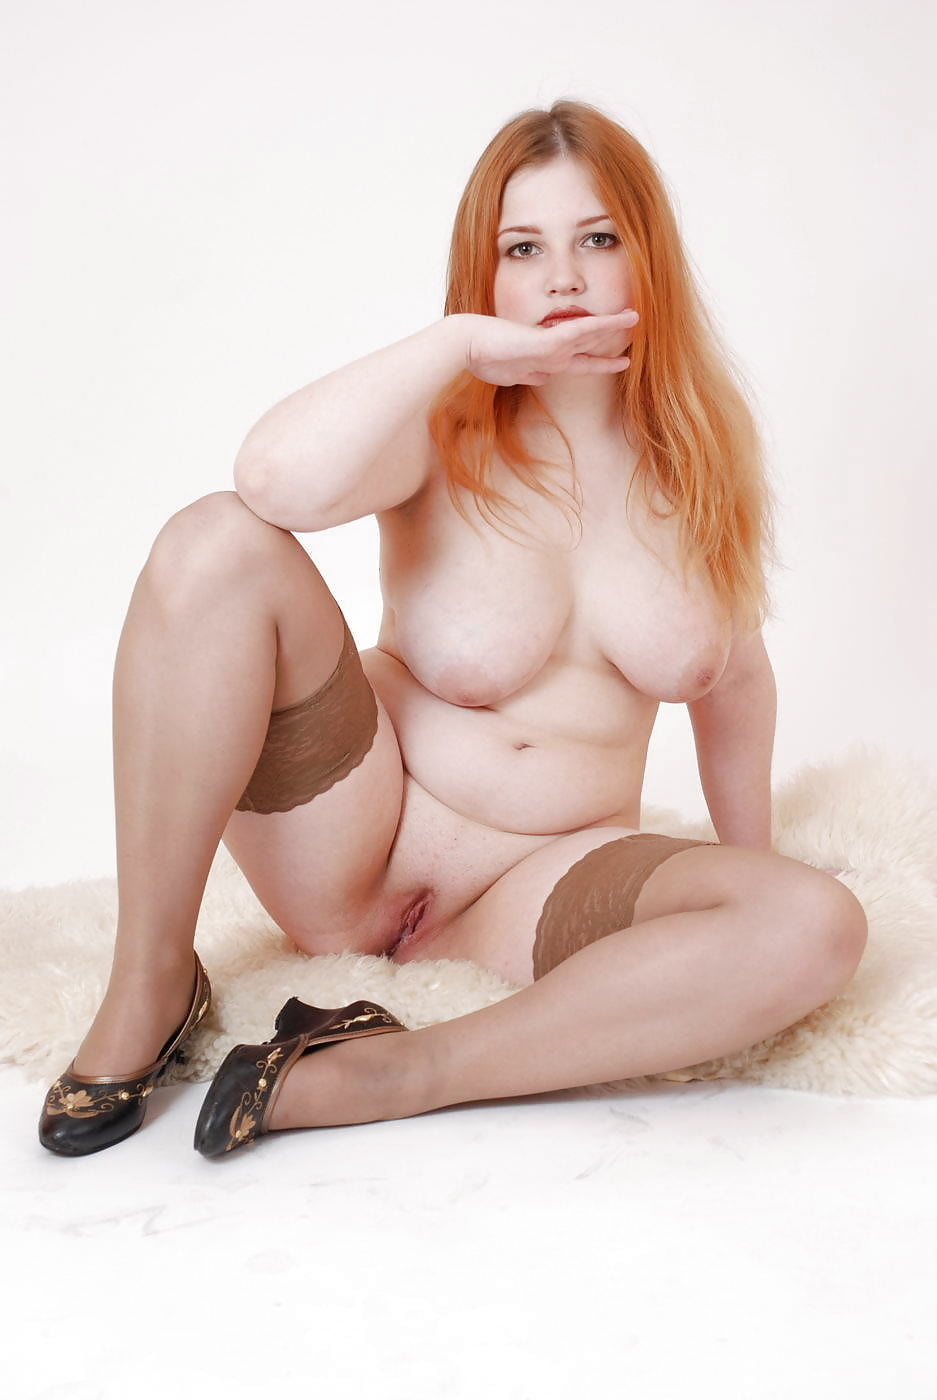 Naked chubby redhead 9